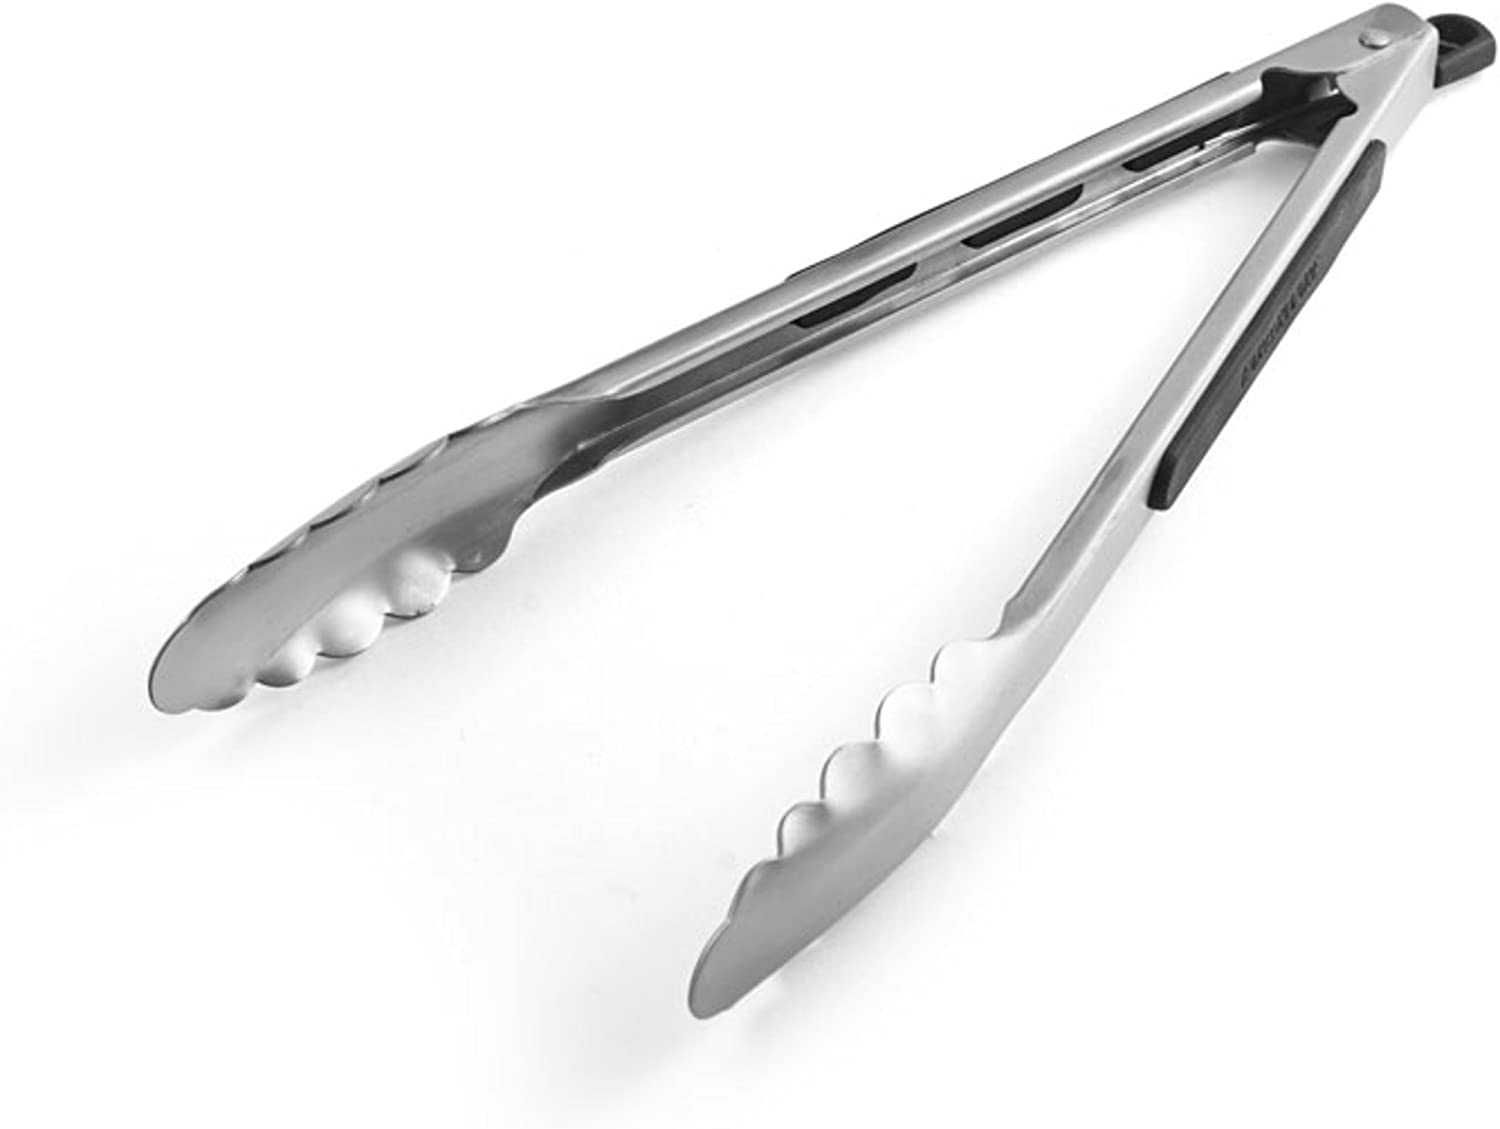 Farberware Professional Stainless Steel and Heat Resistant Nylon Locking Kitchen Tongs, 12-Inch